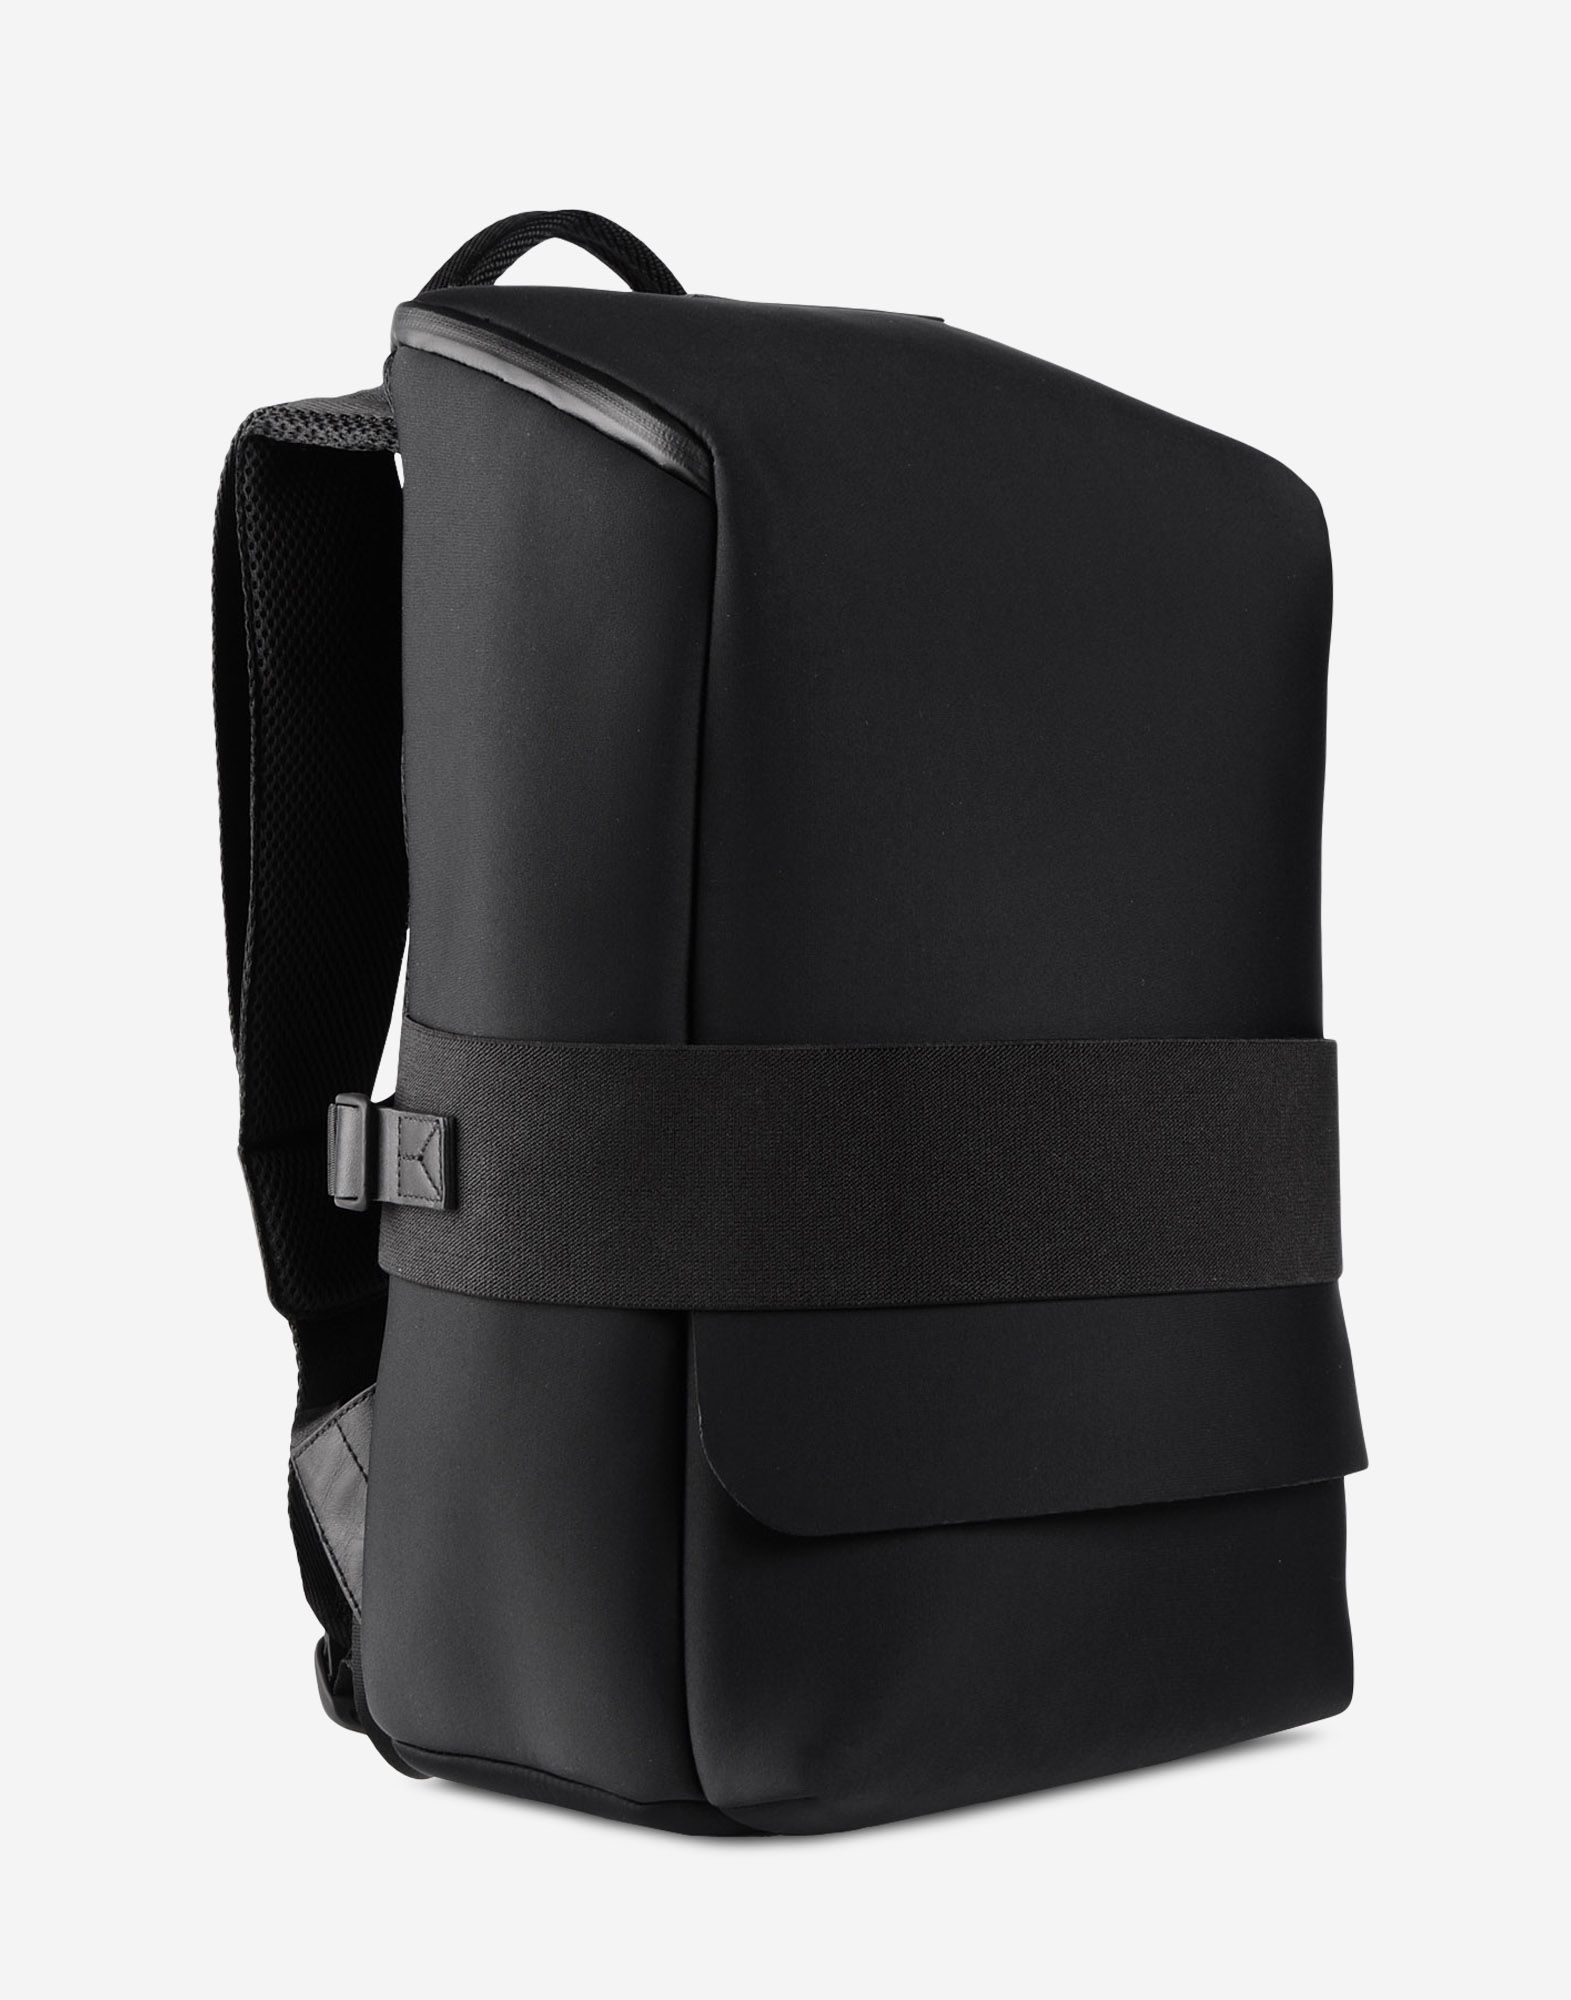 2d9ee66c3caf Y-3 DAY SMALL BACKPACK BAGS unisex Y-3 adidas